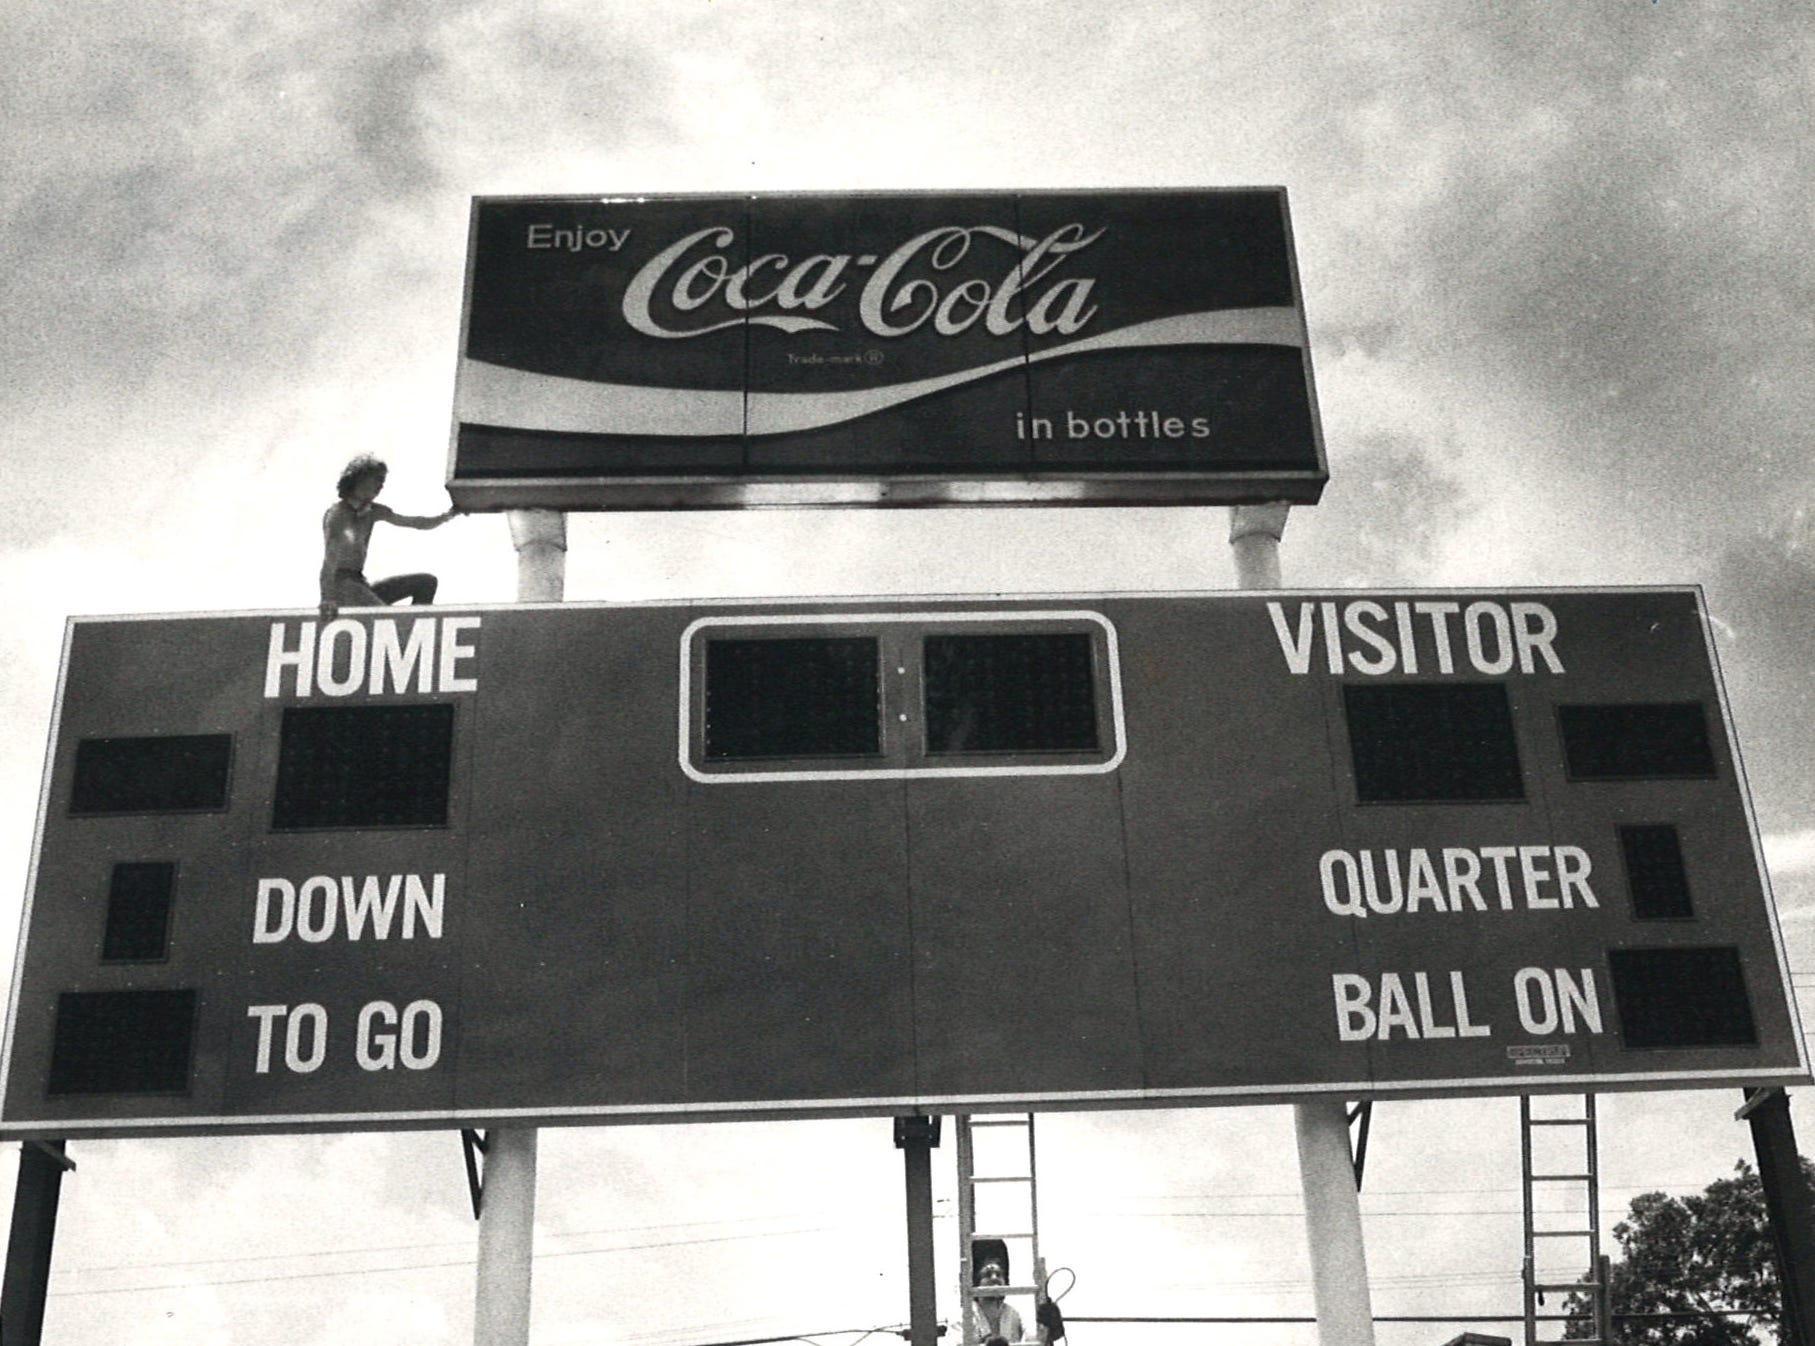 The new scoreboard at Buc Stadium was installed in August 1983.